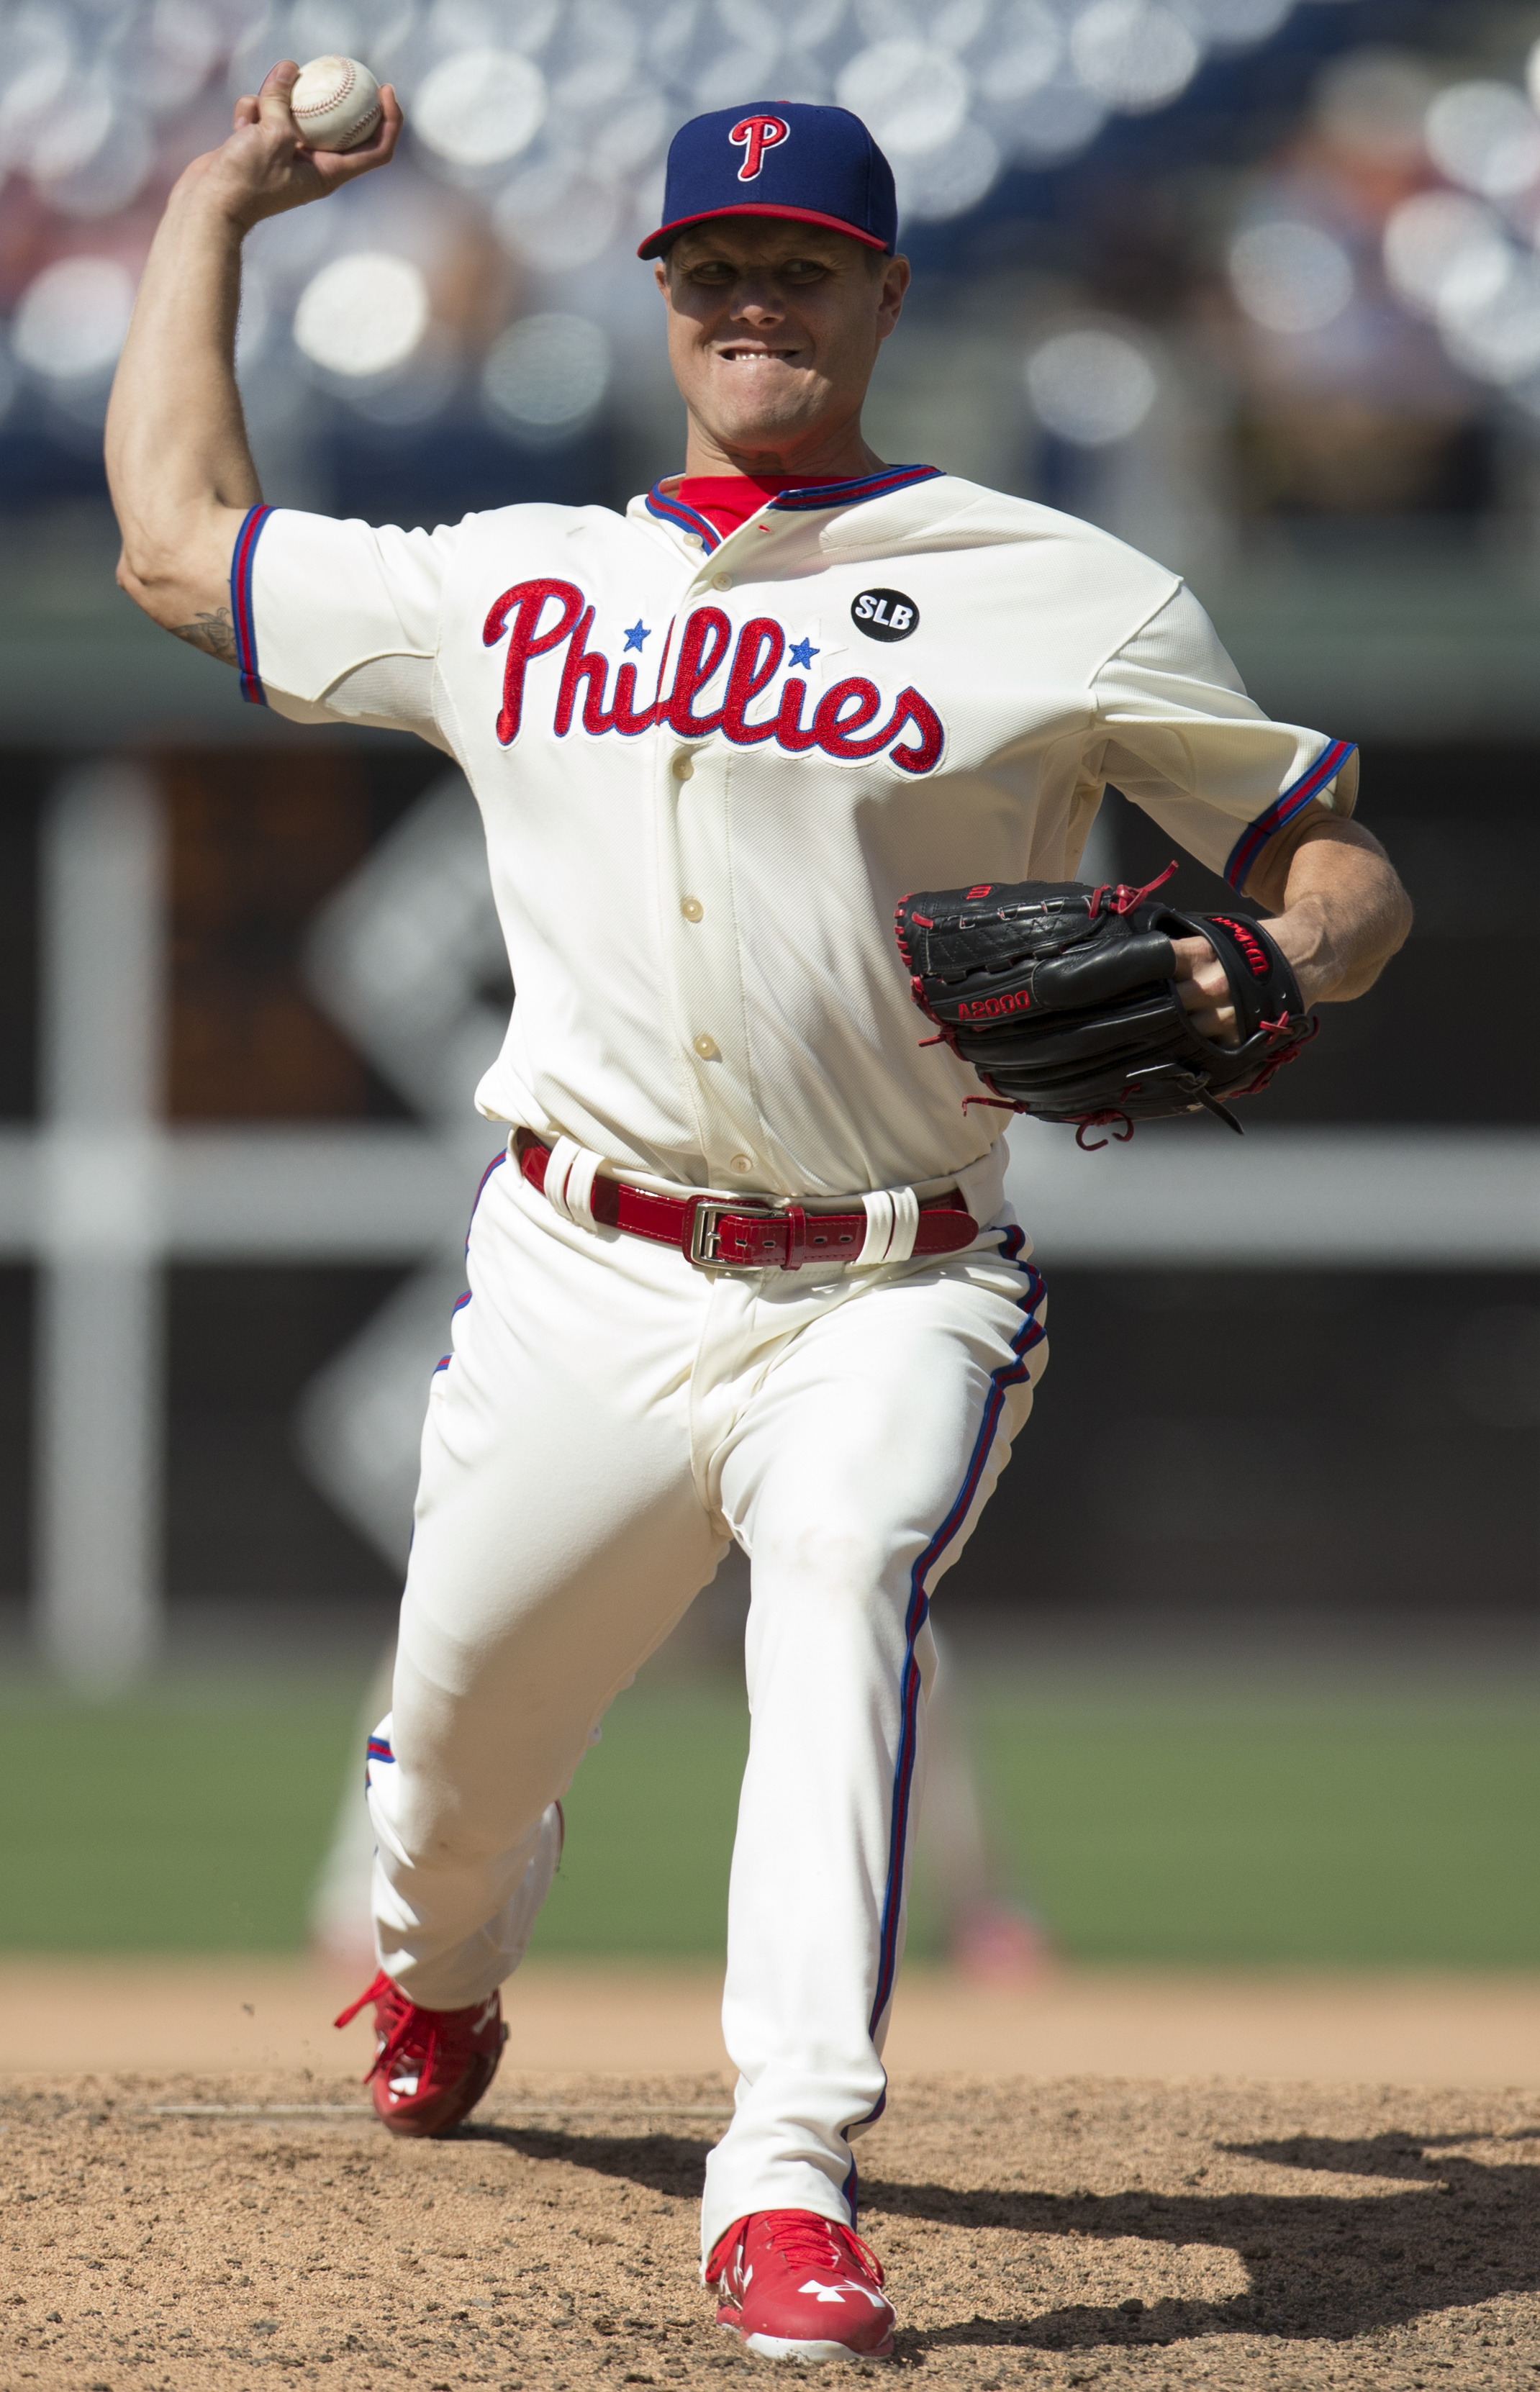 Philadelphia Phillies relief pitcher Jonathan Papelbon throws a pitch during the ninth inning of a baseball game against the Tampa Bay Rays, Wednesday, July 22, 2015, in Philadelphia. The Phillies won 5-4 in 10 innings. (AP Photo/Chris Szagola)